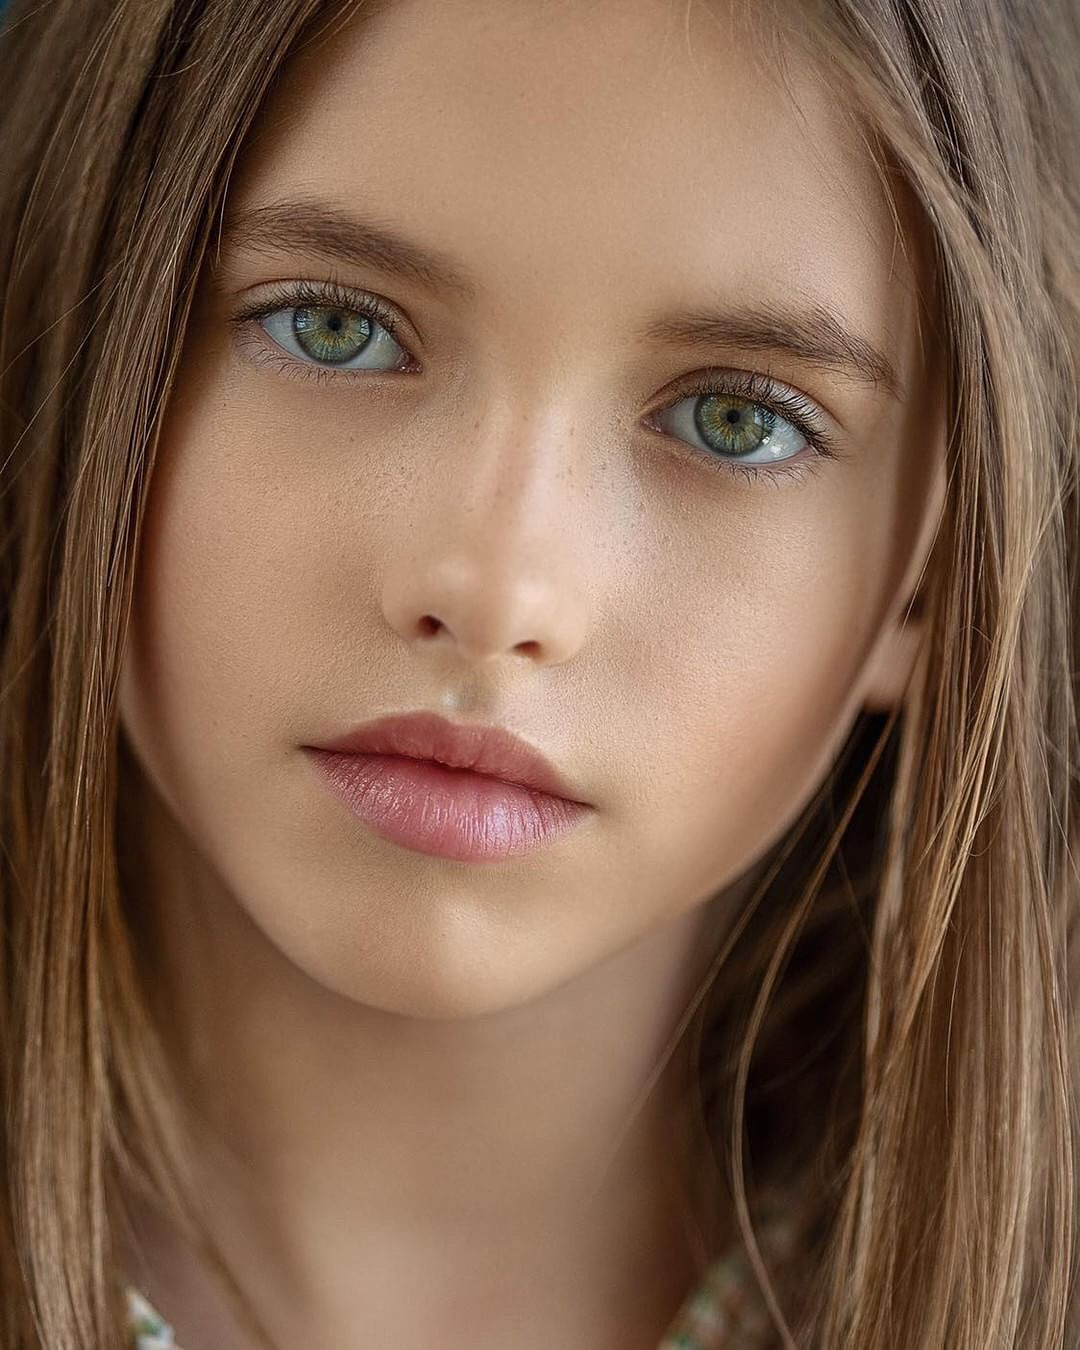 Innocent young model